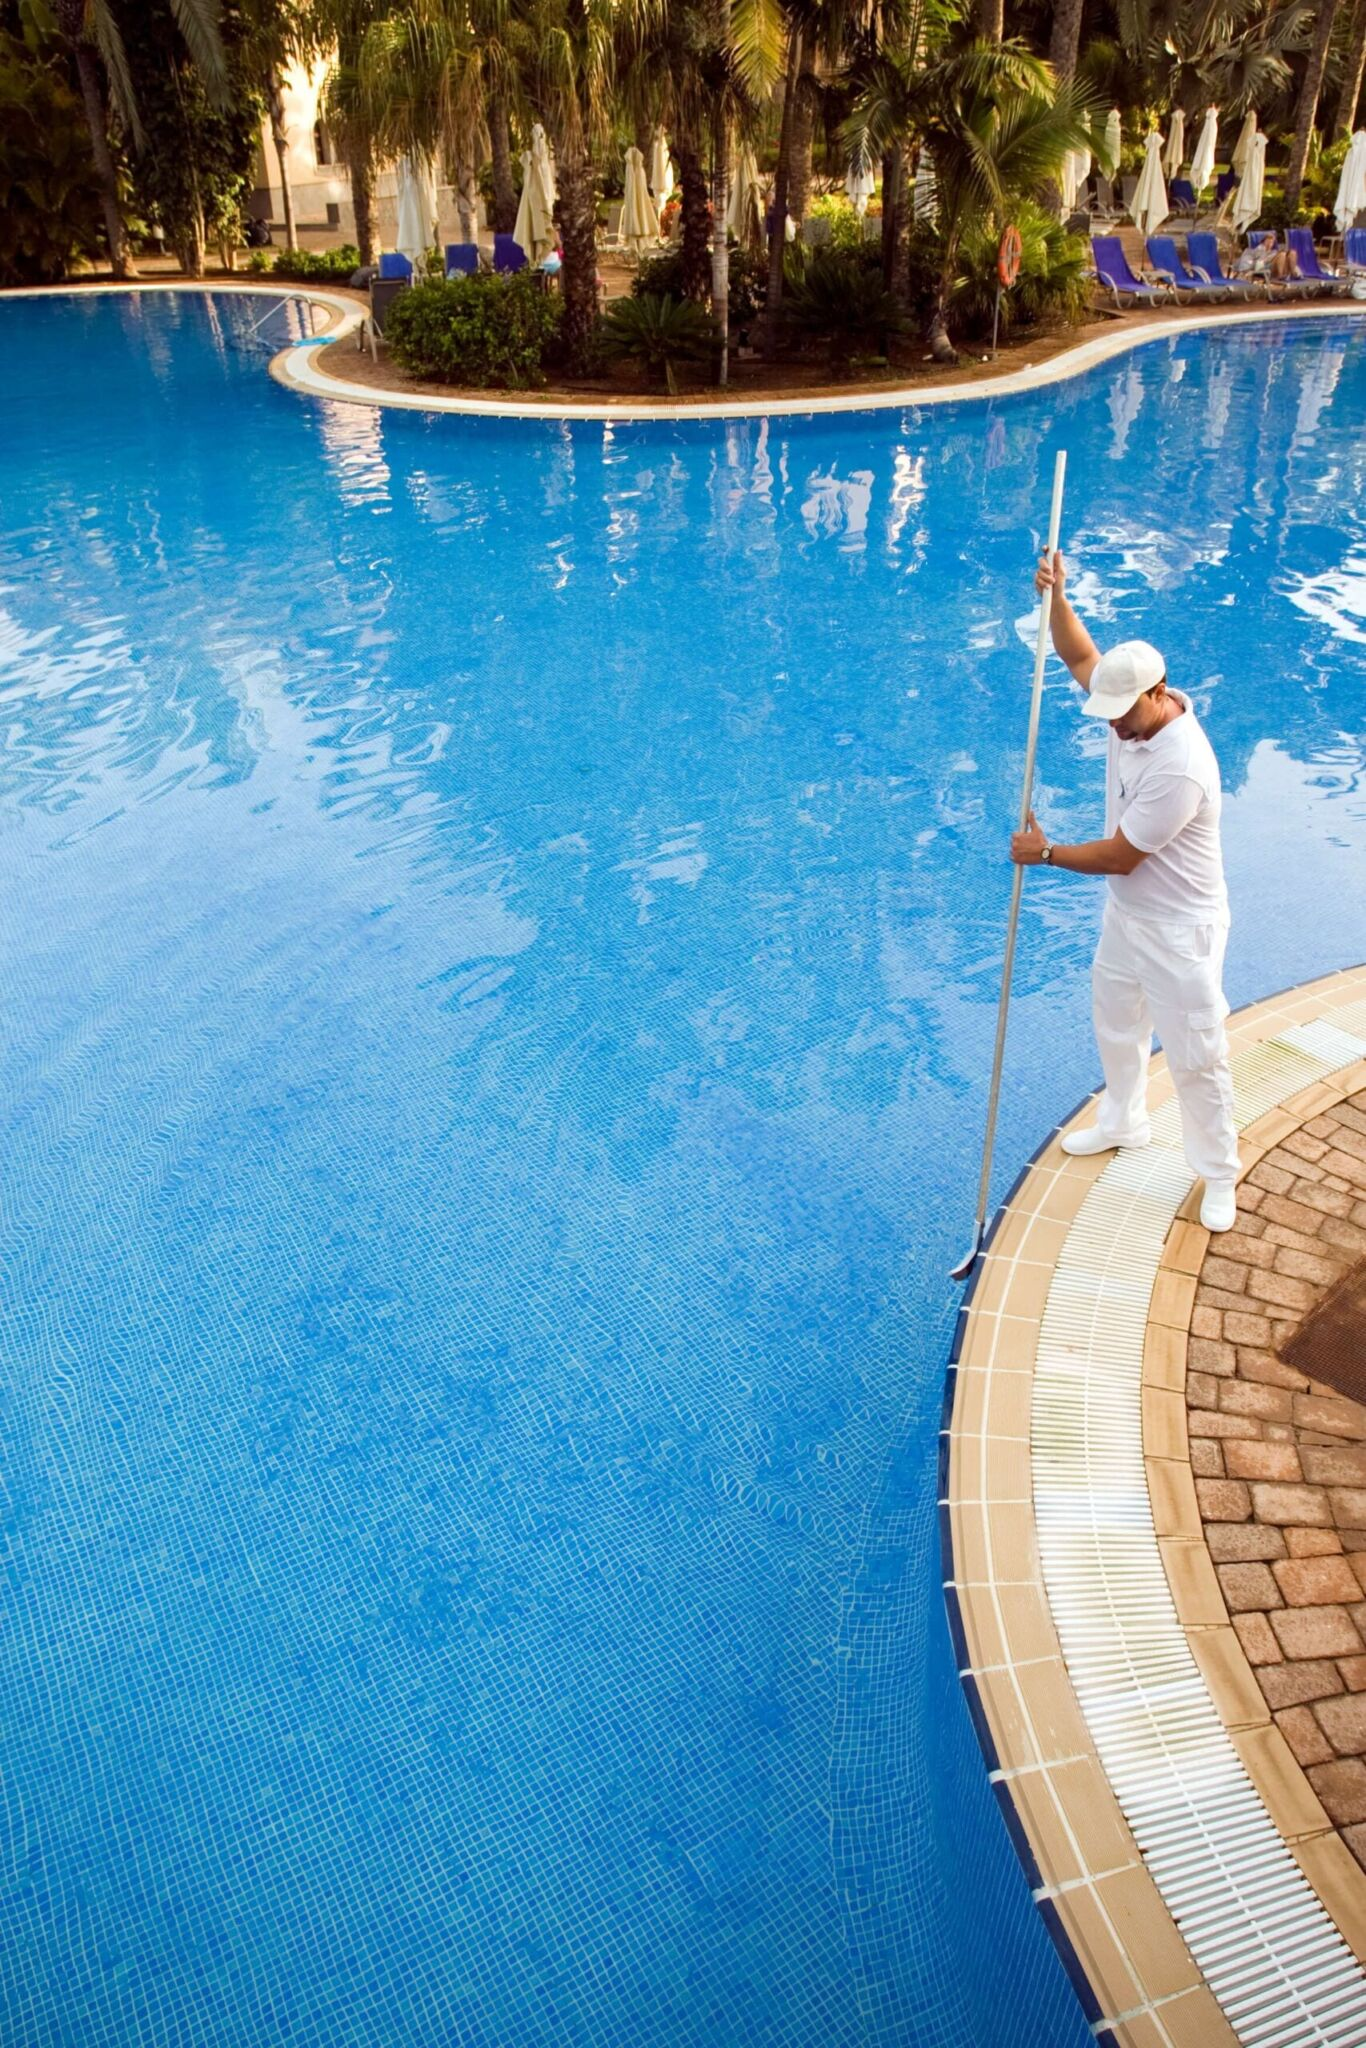 11 pool maintenance tips during storms and hurricanes